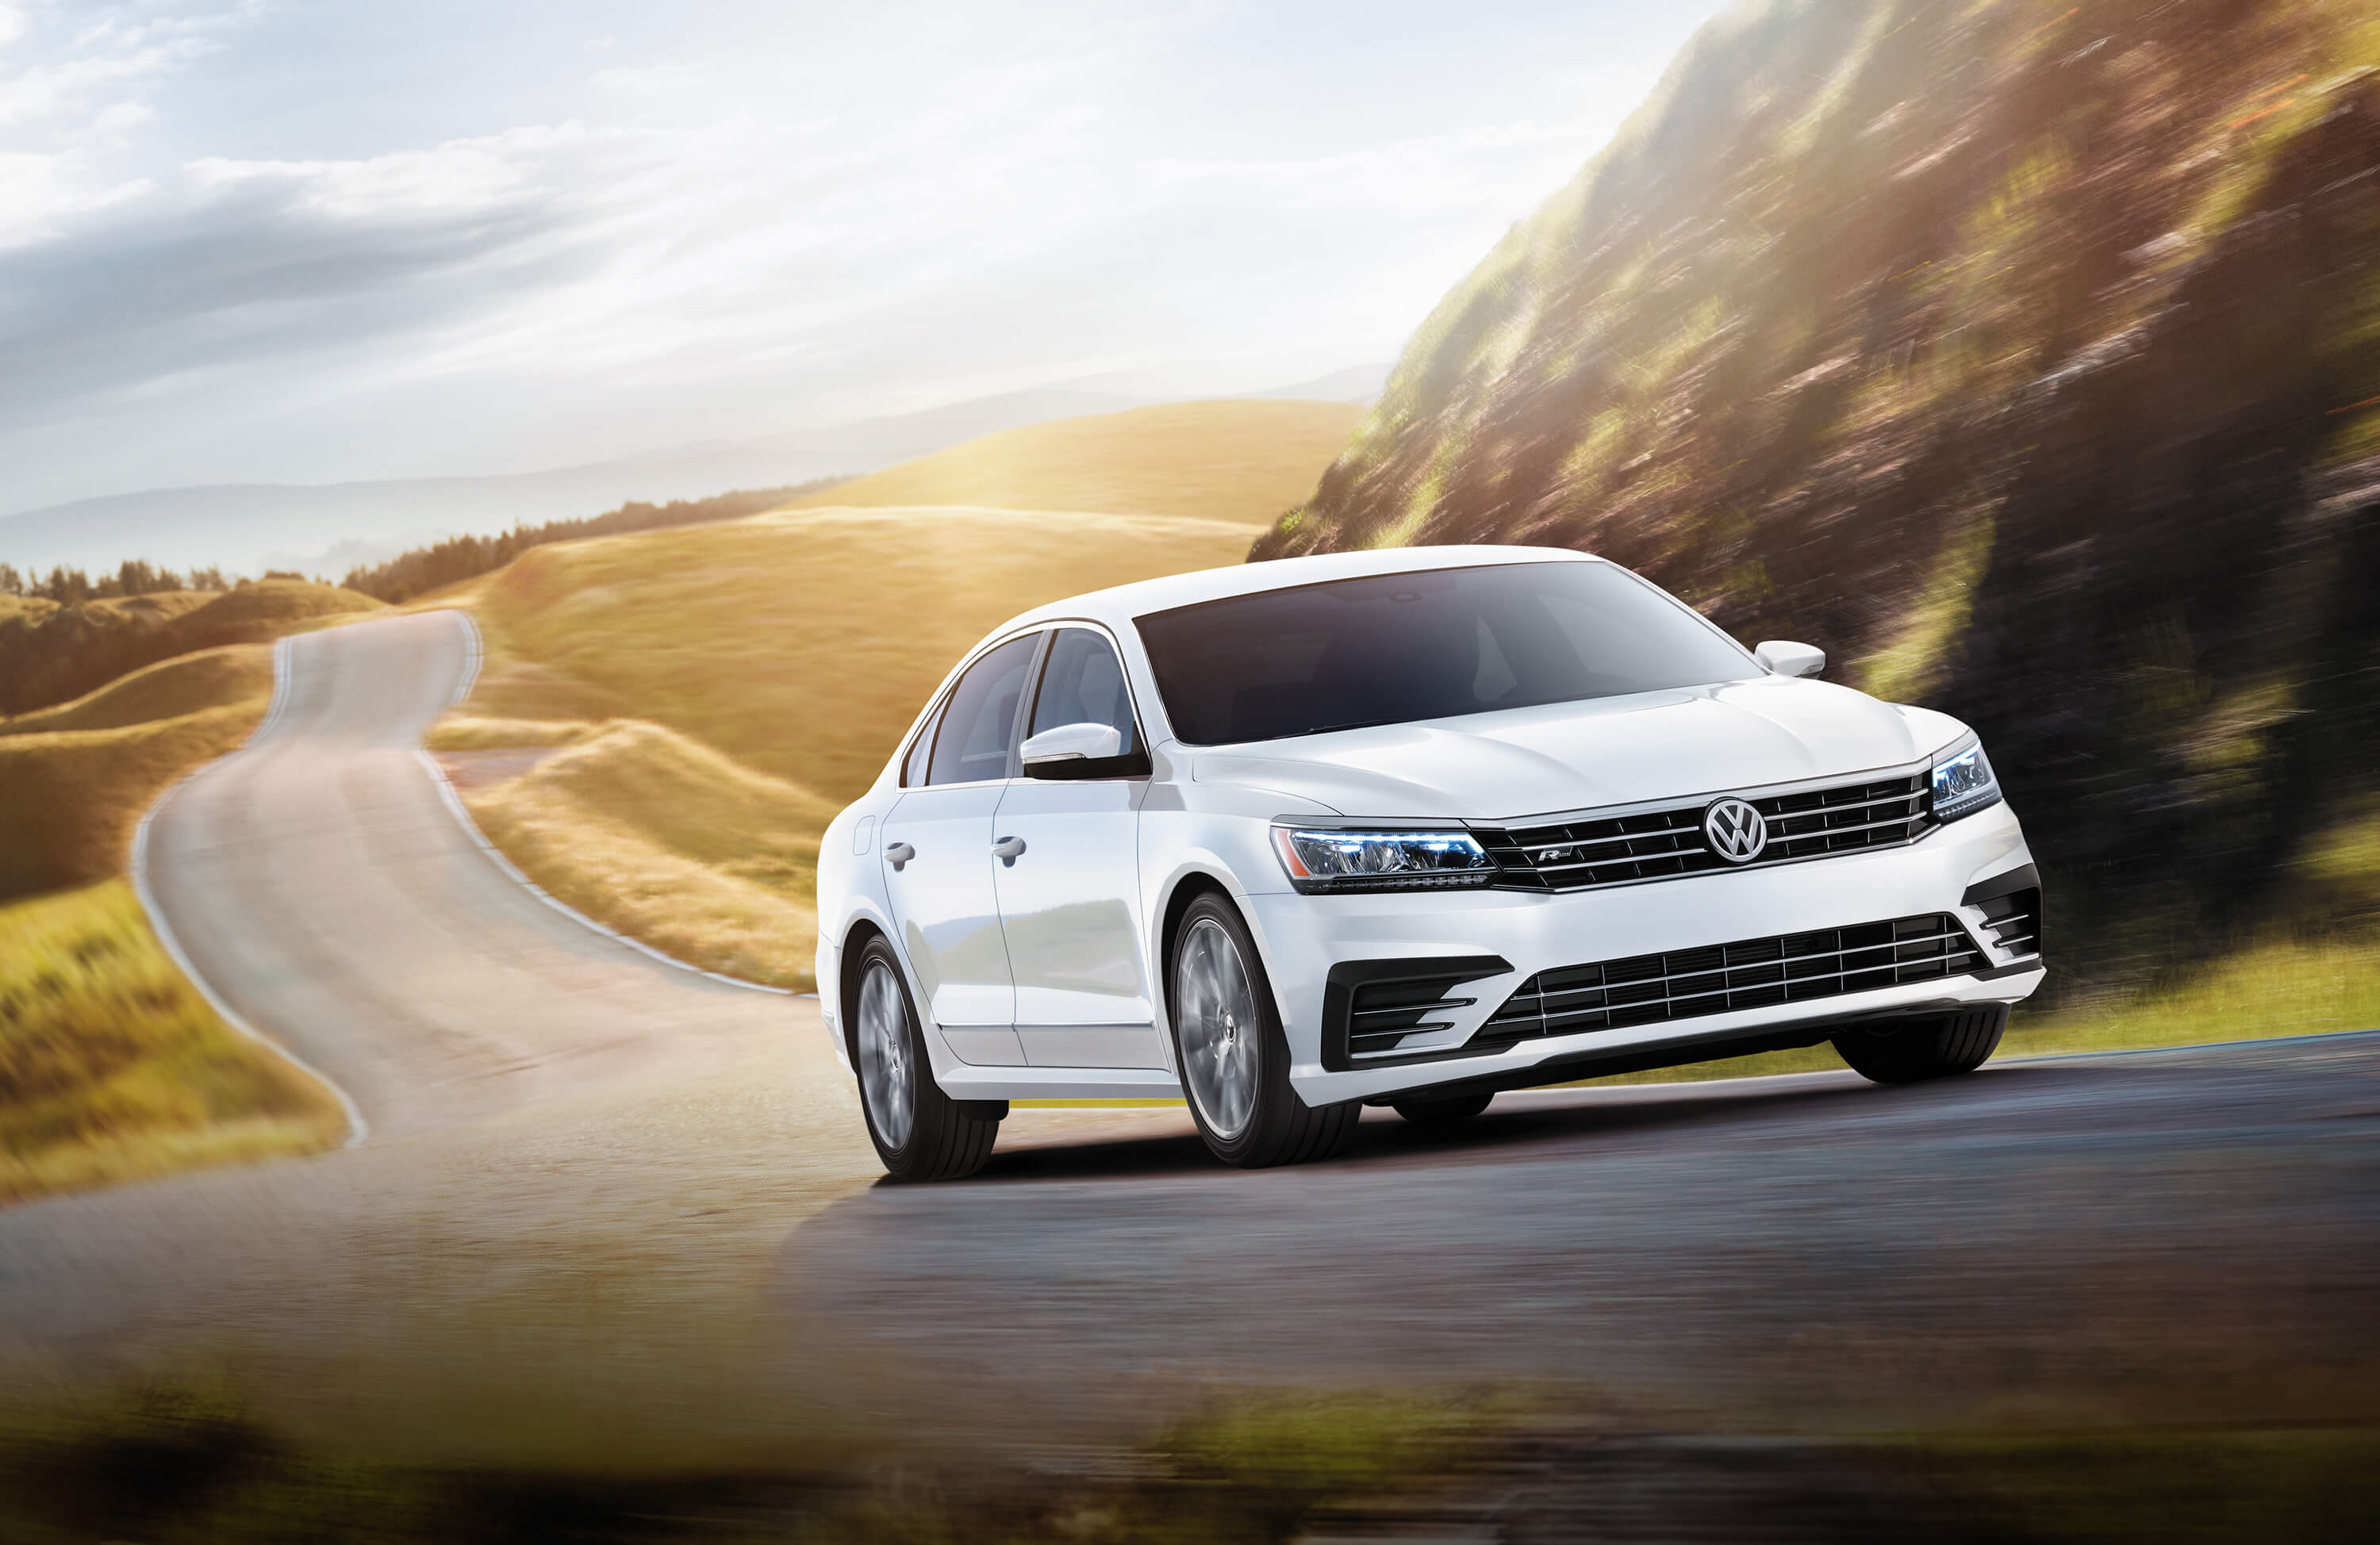 Get Financial Assistance for a New Volkswagen!